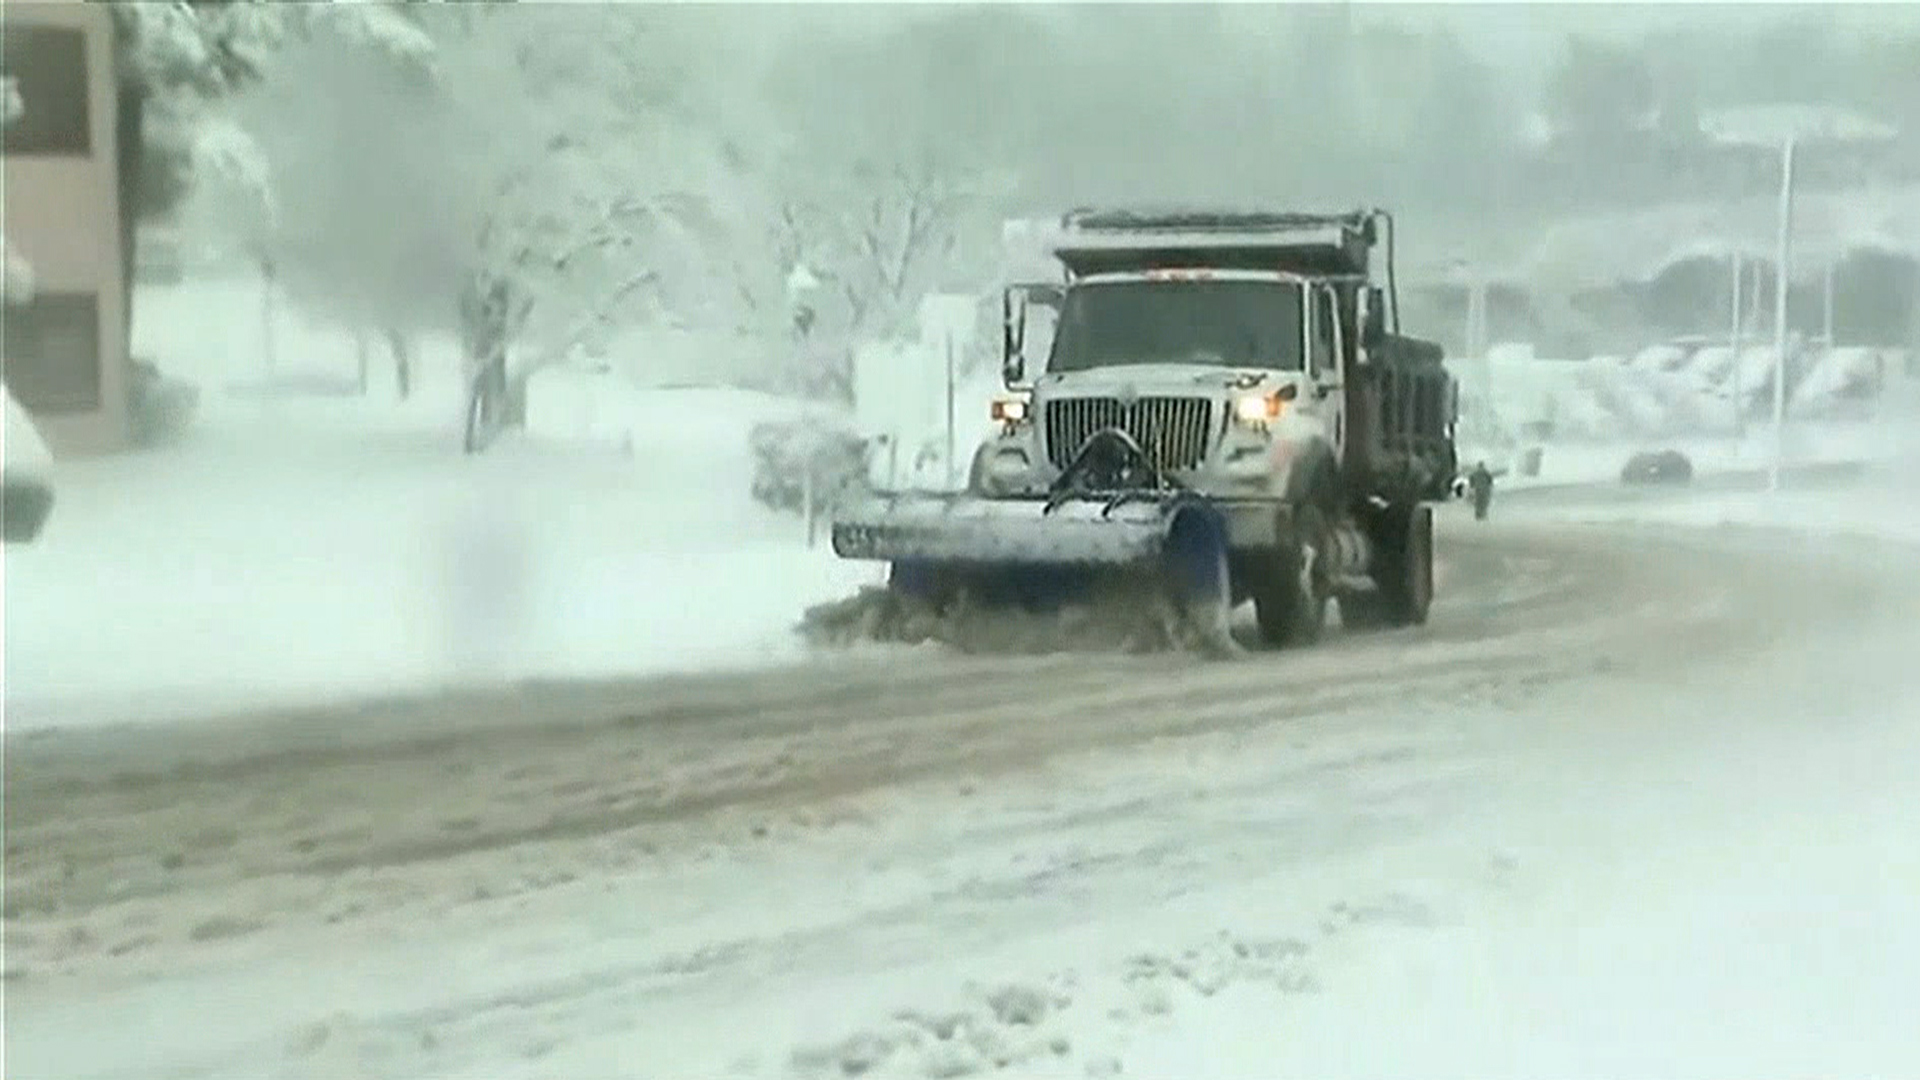 Blizzard 2016 Barrels Up East Coast With Deadly Force